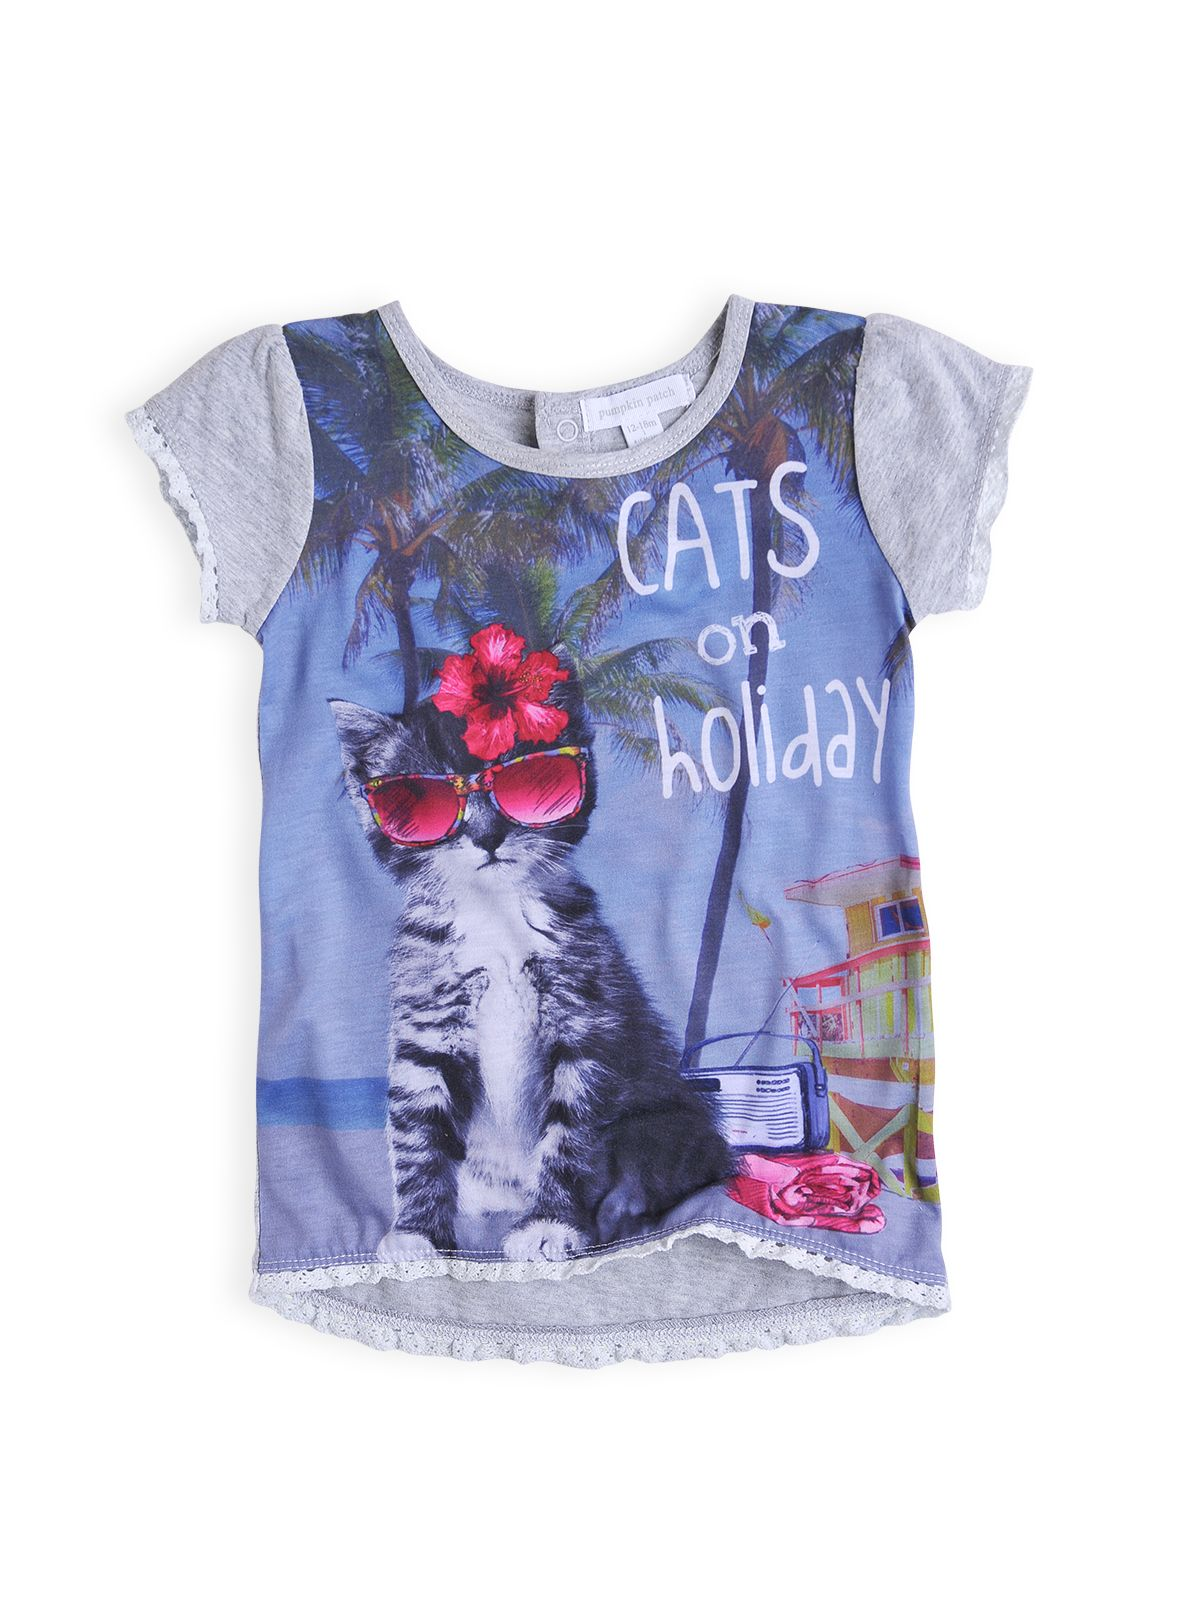 Girls cat on holiday top